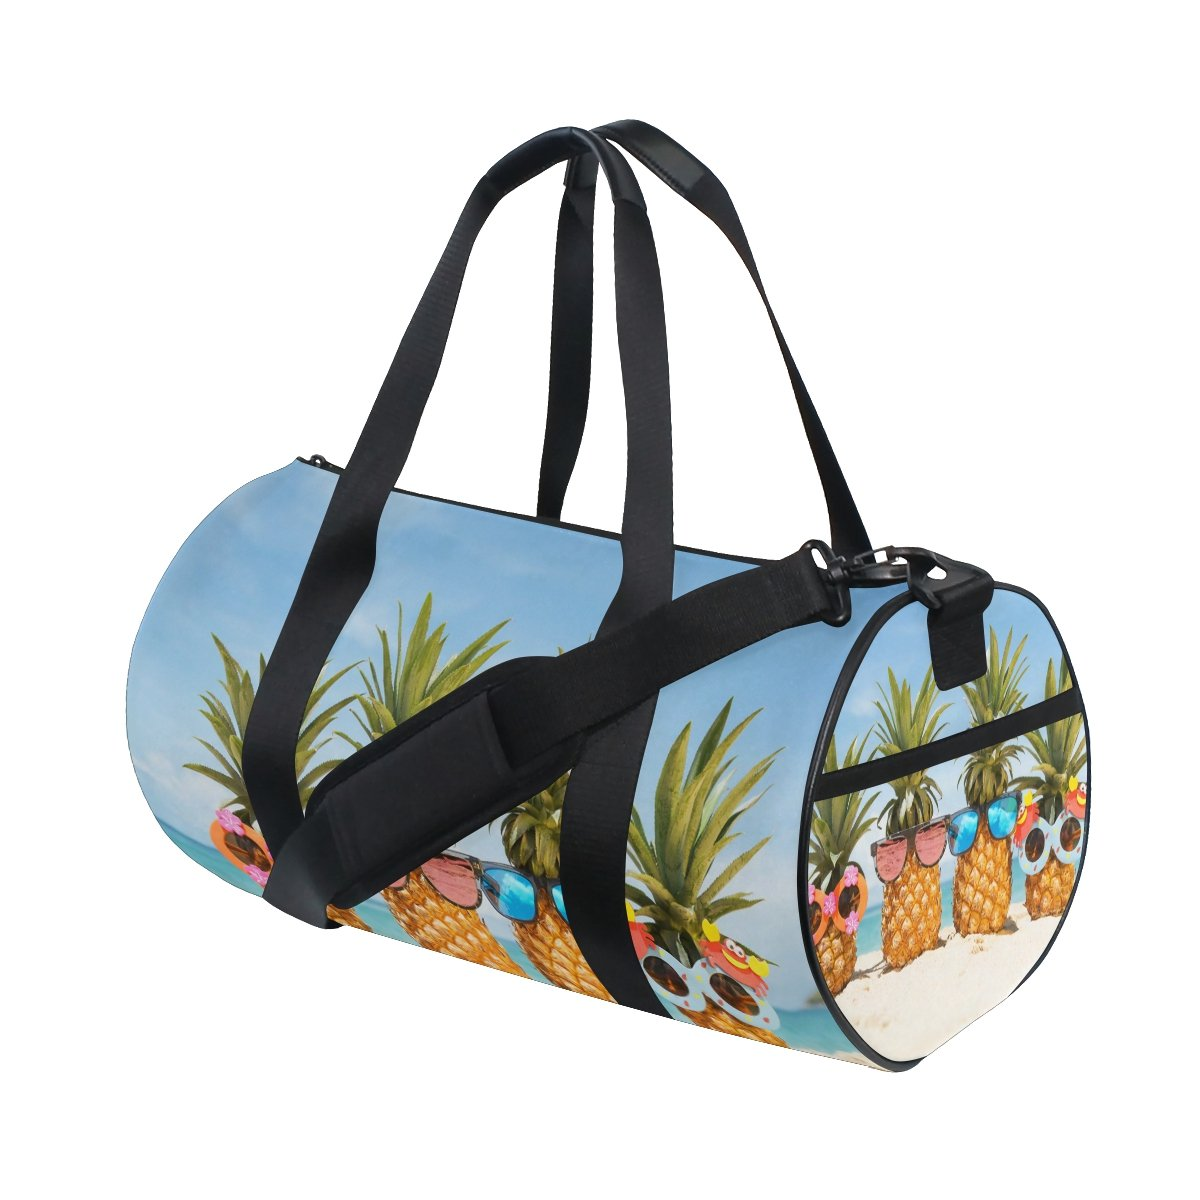 Naanle Pineapple Stylish Sunglasses On Beach Turquoise Sea Gym bag Sports Travel Duffle Bags for Men Women Boys Girls Kids